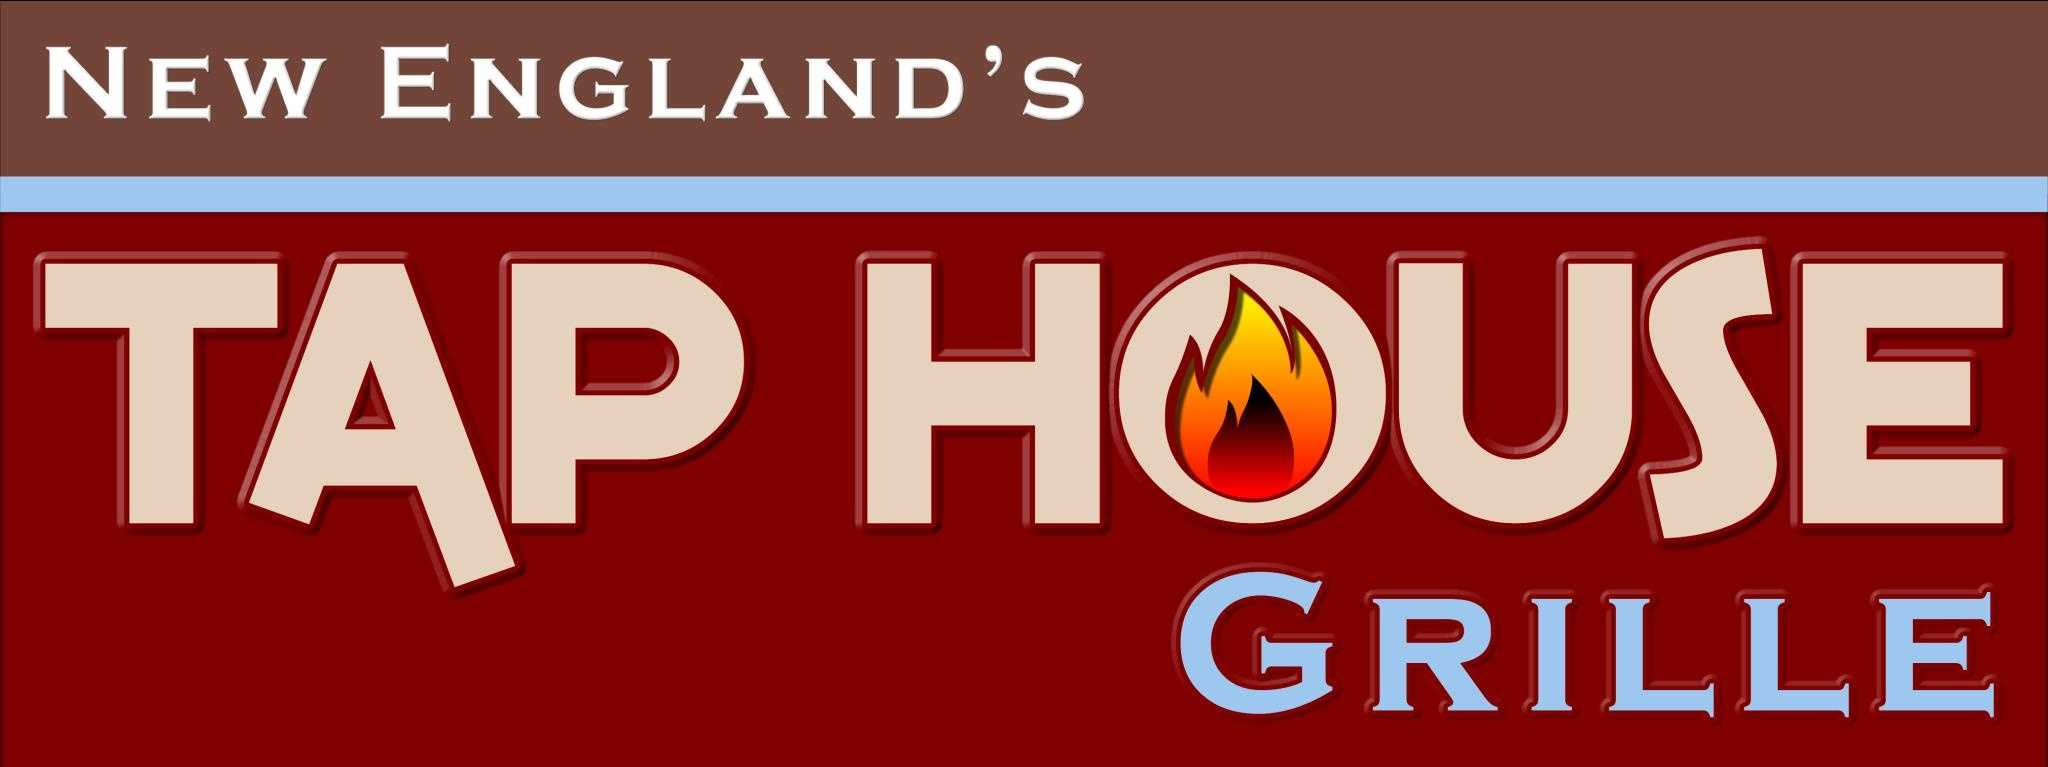 13. New England's Tap House Grille in Hooksett